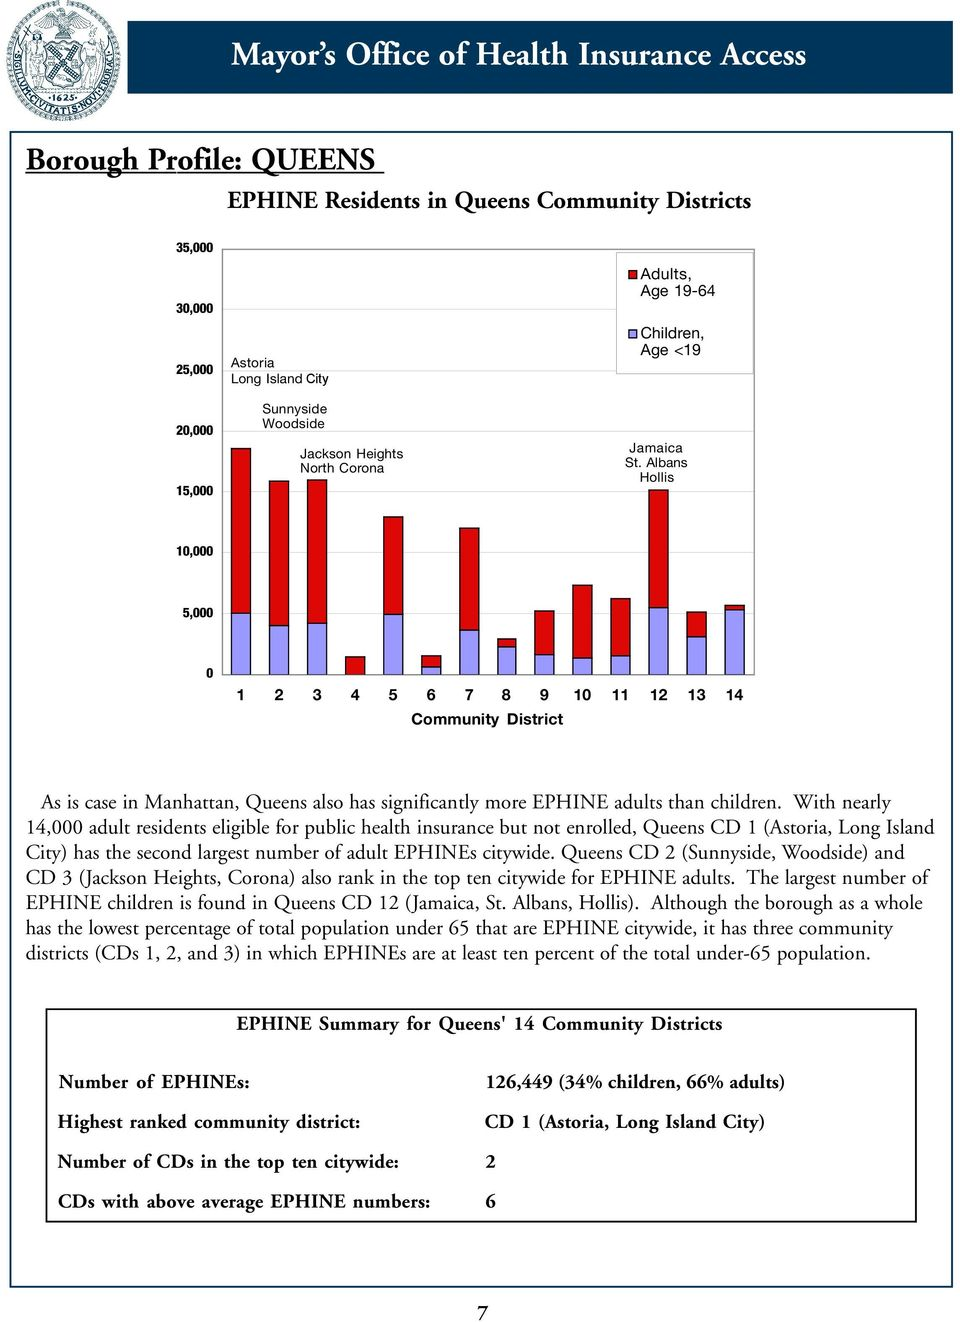 With nearly 14,000 adult residents eligible for public health insurance but not enrolled, Queens CD 1 (Astoria, Long Island City) has the second largest number of adult EPHINEs citywide.